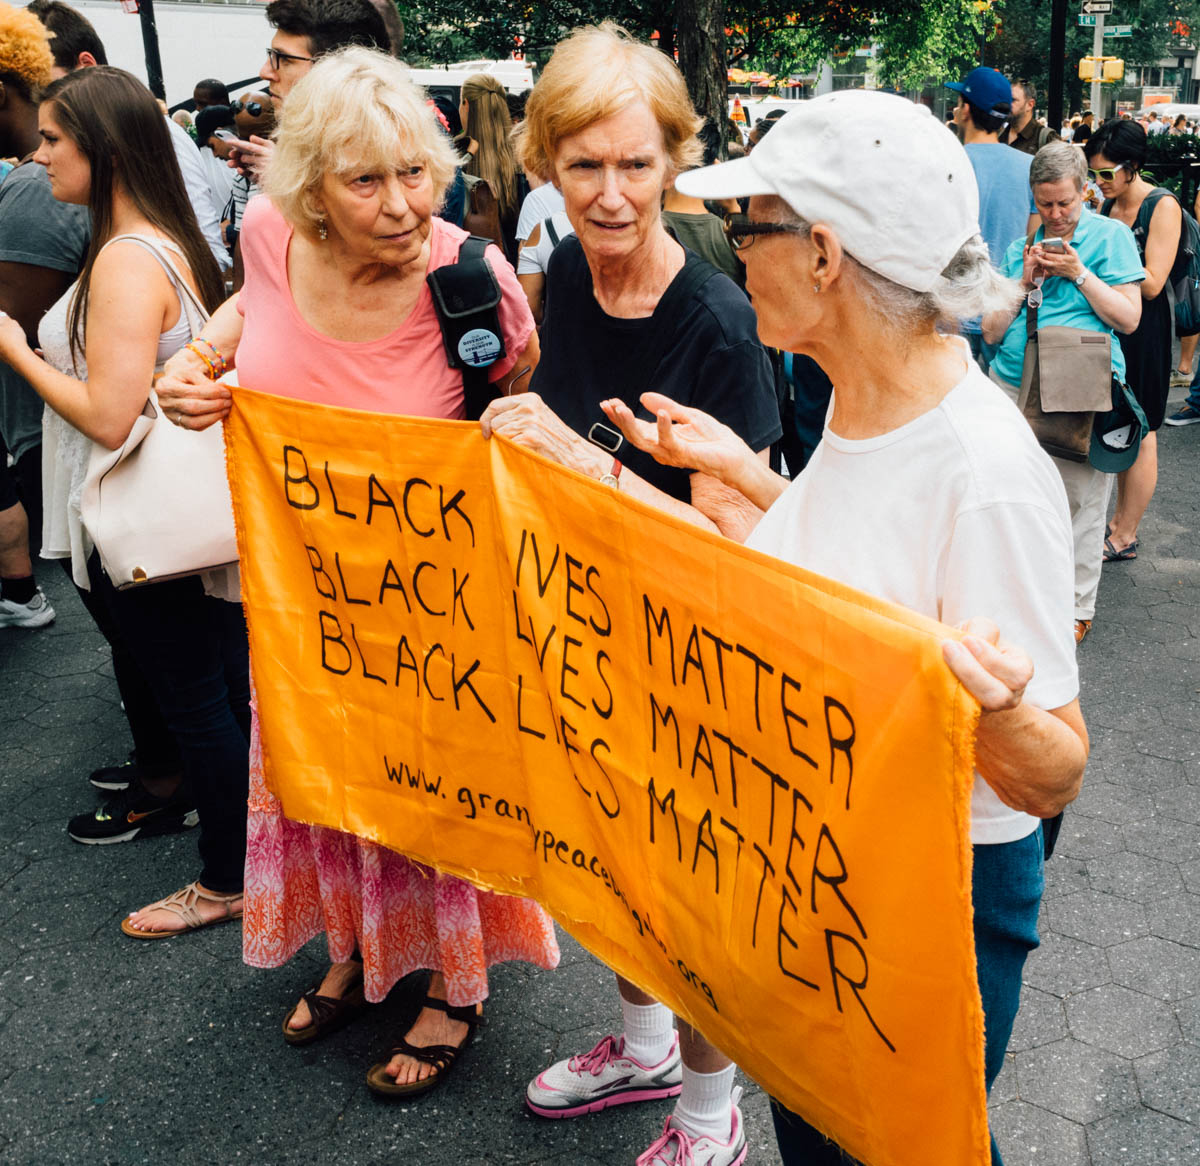 GrannyPeaceBrigade.org #stoppoliceterror Rally - Union Square Park, NYC 7.7.16 (1 of 1).jpg